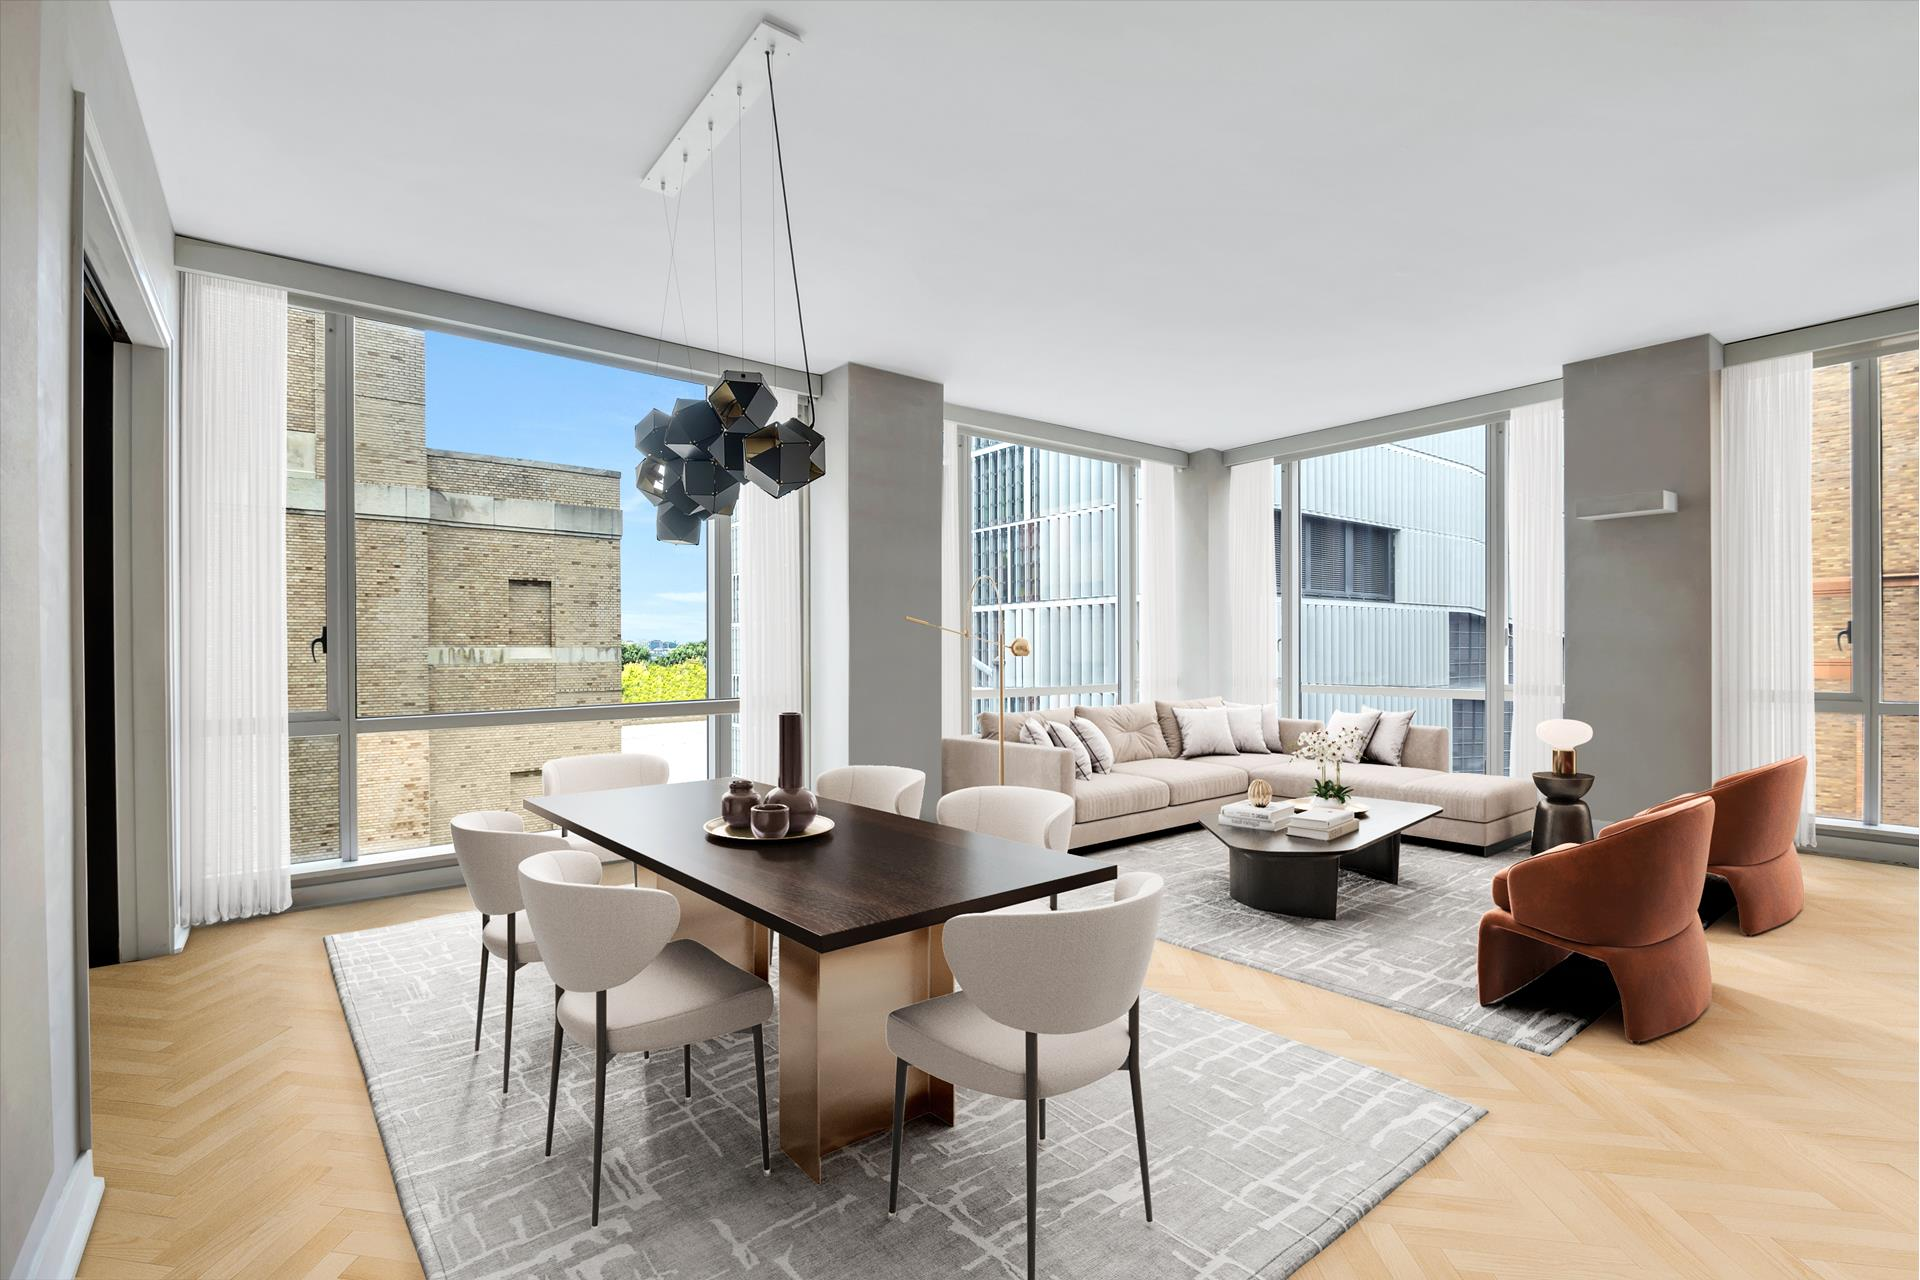 A bright corner condo nestled just a block away from the Hudson River Greenway, this 4-bedroom, 4.5-bathroom home is an exemplar of contemporary city luxury. Features of this 2,309 sq. ft. apartment include gorgeous white oak herringbone floors, soaring 10-ft ceilings, central heating and cooling, wall-to-wall floor-to-ceiling windows with northern and western exposure, and a convenient in-unit washer/dryer. Beyond a tasteful foyer adorned with a powder room and a walk-in coat closet, the home flows into an expansive, open-concept living room, dining room, and kitchen. The living and dining spaces are saturated with natural light, and the custom Bulthaup kitchen is equipped with a massive eat-in island, sleek countertops, and a suite of high-end stainless-steel appliances from Viking, Miele, Sub-Zero, and Kuppersbusch.The master suite sits behind the kitchen and possesses northern exposure, a spacious dressing area with custom built-ins, a wall of reach-in closets, and an immaculate en-suite bathroom with dual vanity sinks, radiant heated flooring, a walk-in shower, and a deep soaking tub. Each of the remaining three bedrooms has private closet space, western exposure, and full en-suite bathrooms.The Urban Glass House is a full-service condominium located in Hudson Square. The building has a 24-hour doorman, a super, bicycle storage, a private gym with a yoga room, and private storage bins. It is just a few blocks from all the restaurants, bars, cafes, and shops of Greenwich Village, SoHo, and Tribeca, and is close to Piers 40 and 45 as well as the Hudson River Greenway. Nearby subway lines include the 1/2/C/E. Pets are welcome.